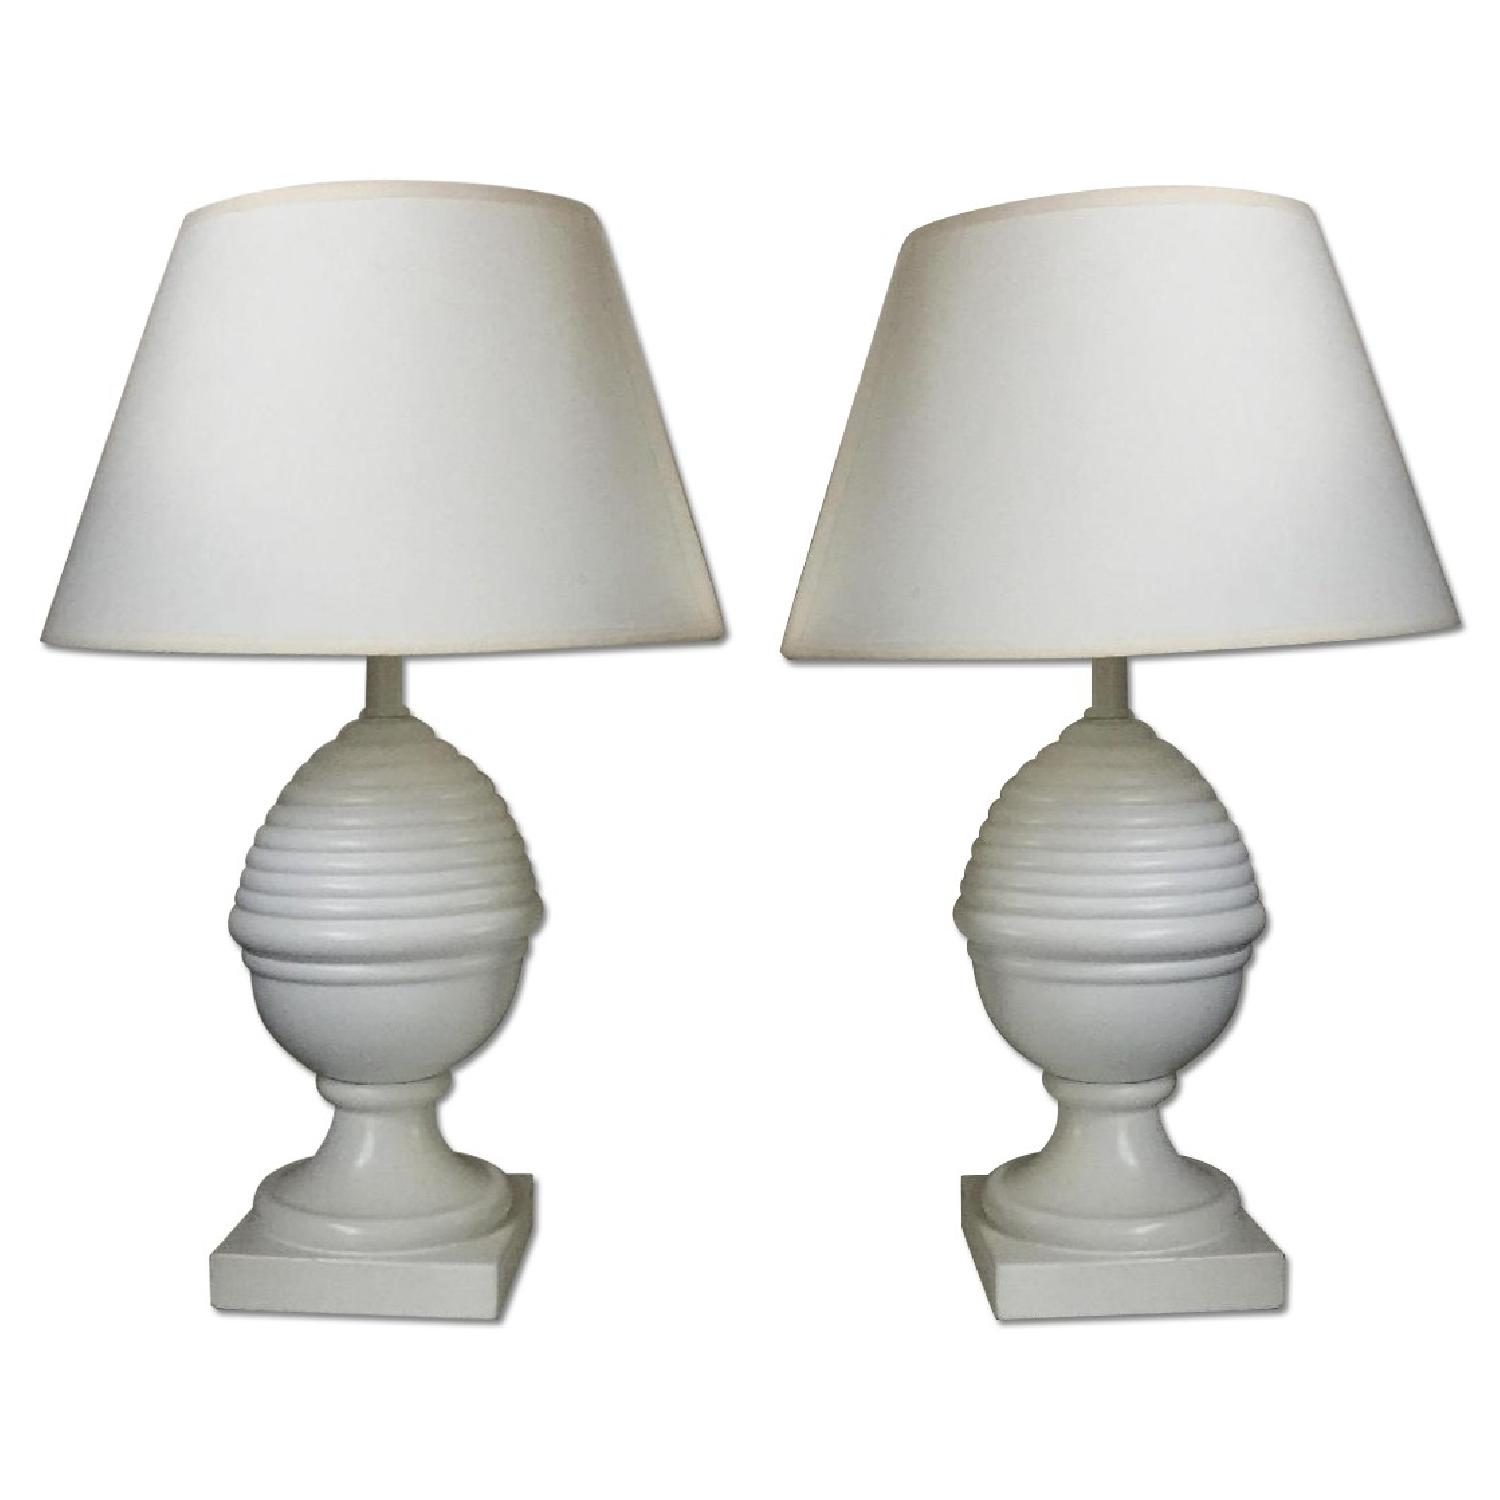 Matching White Lamps - image-0